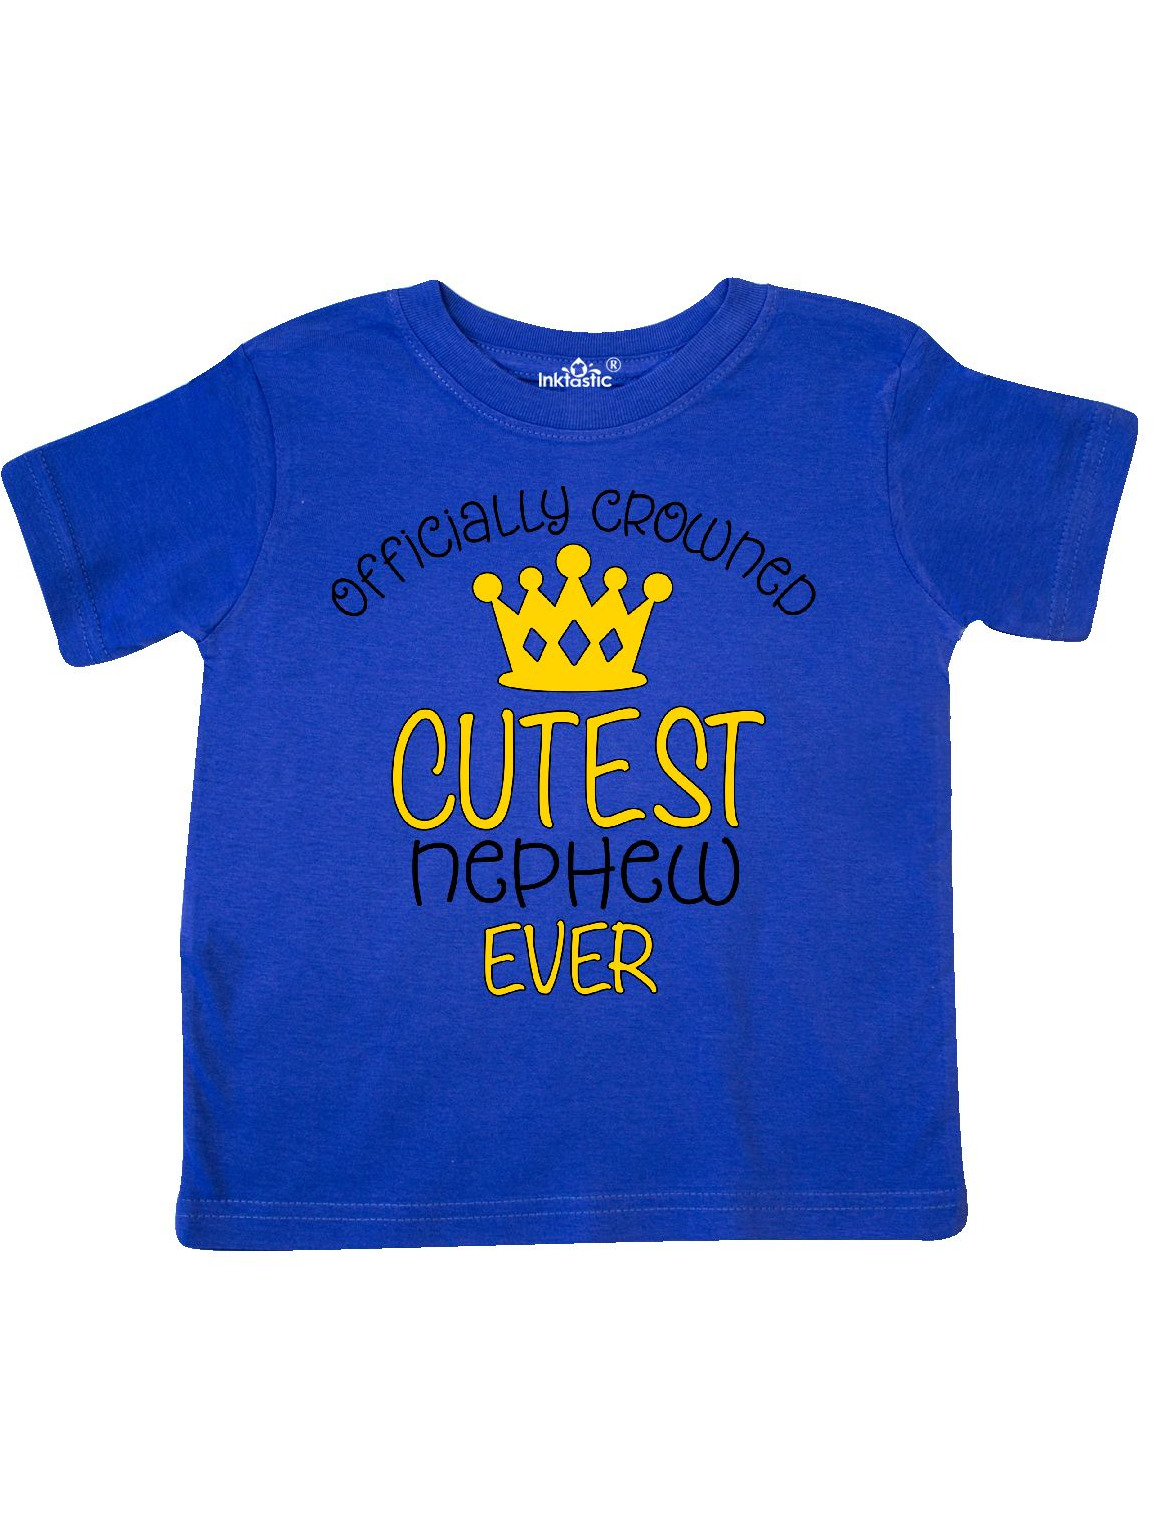 Officially Crowned Cutest Nephew Ever gold crown Toddler T-Shirt